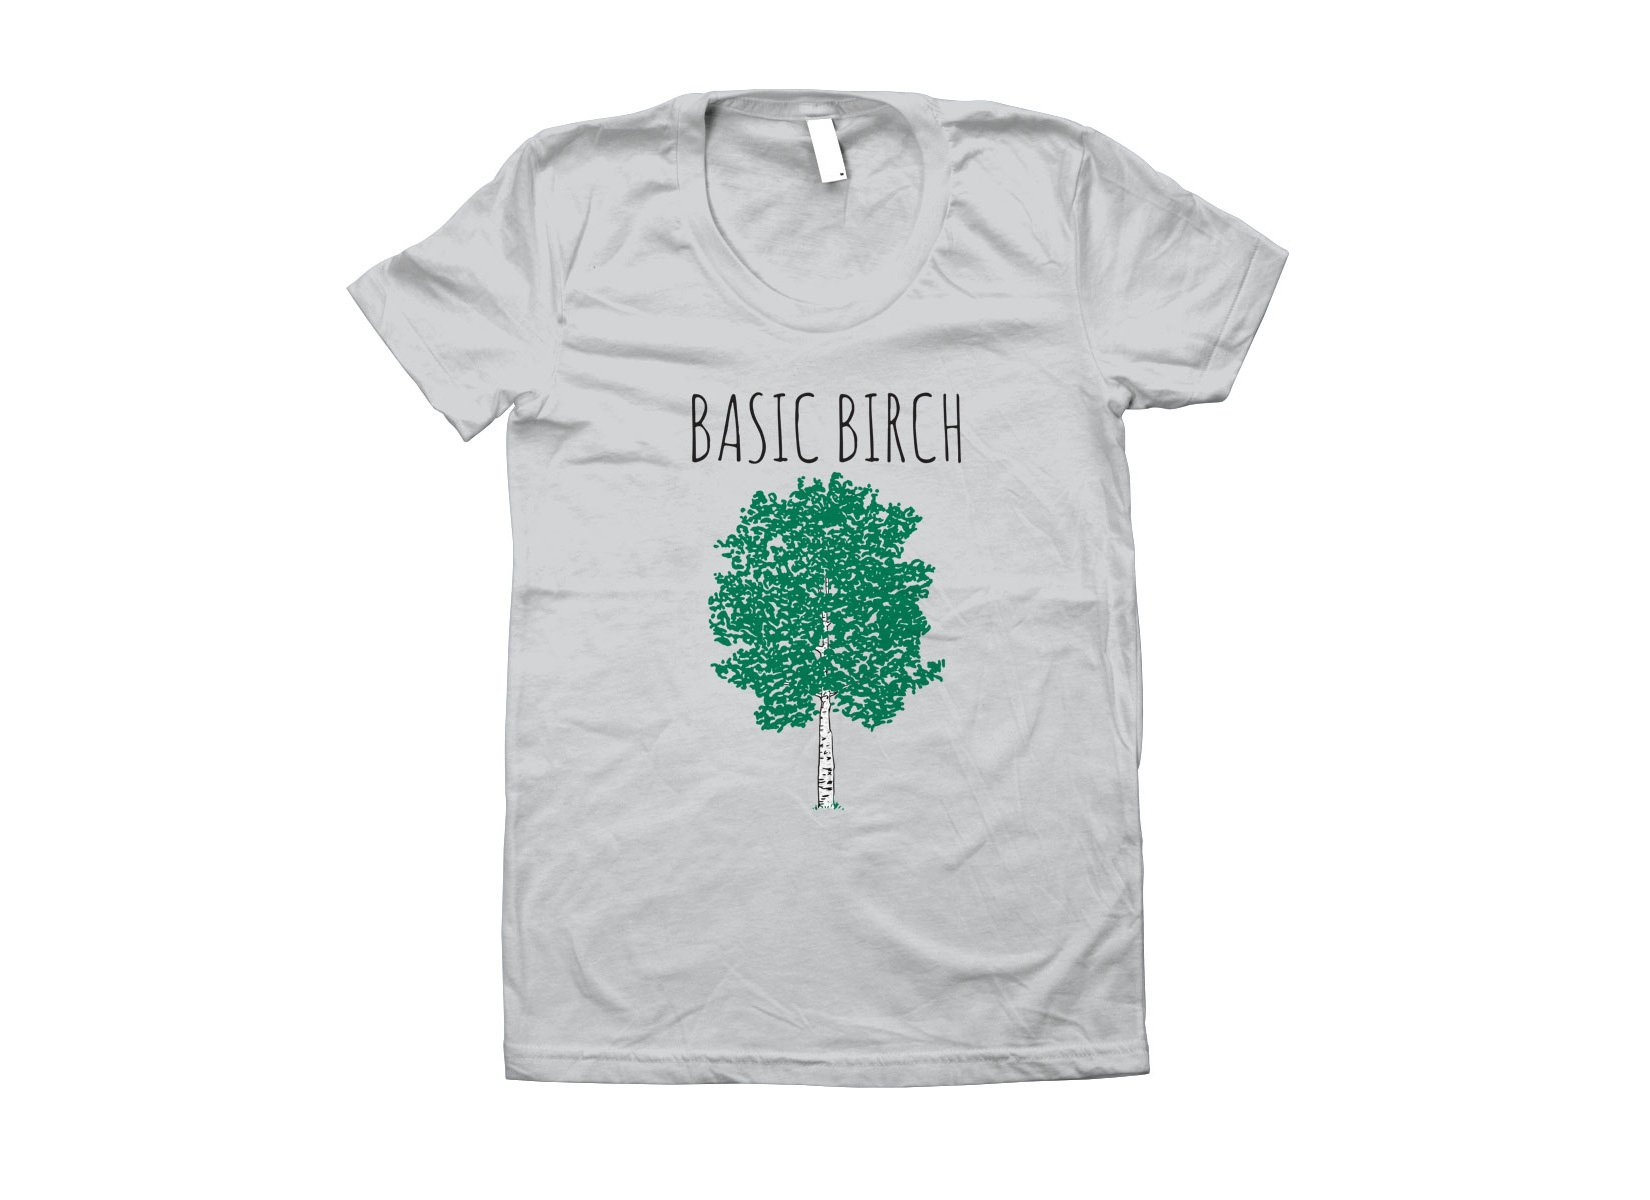 Basic Birch on Juniors T-Shirt